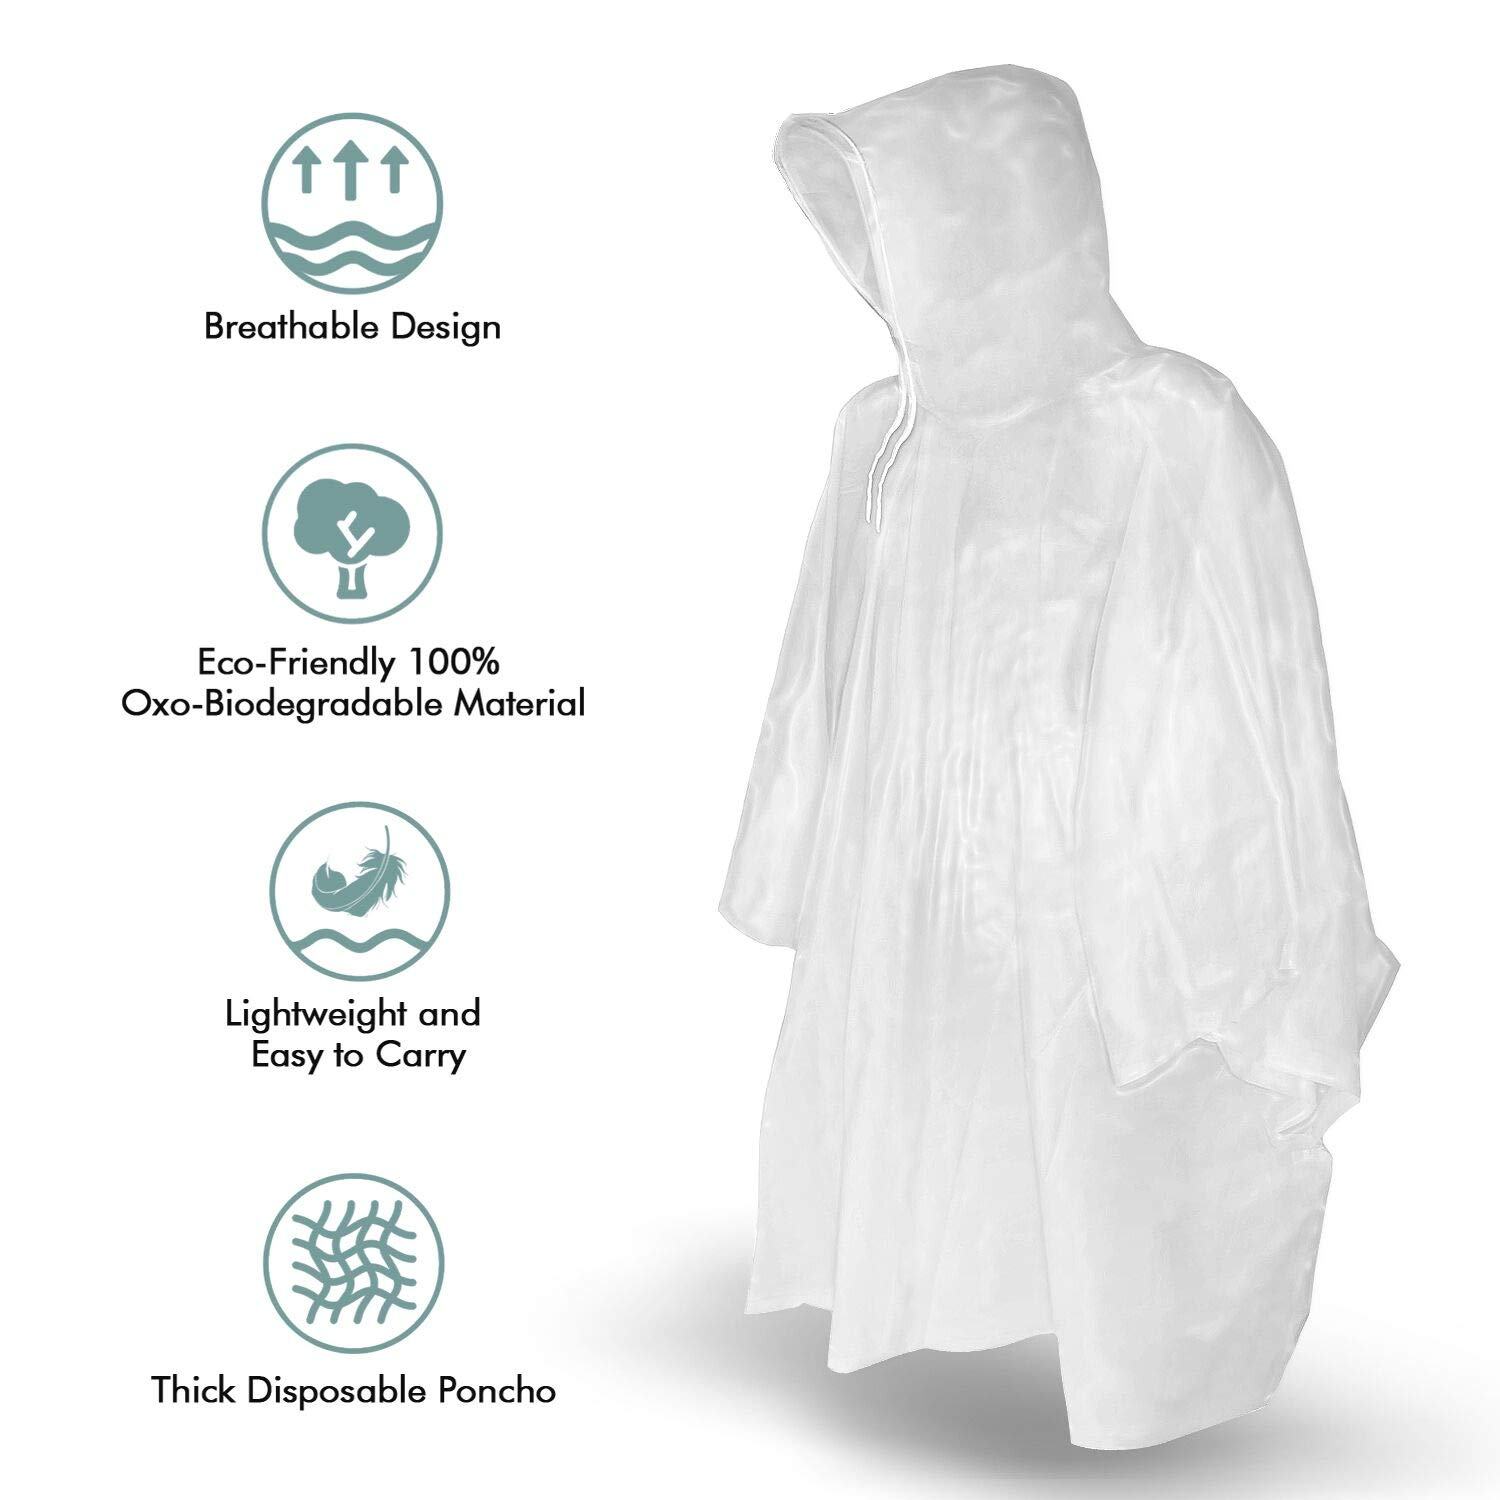 for Concerts Camping Waterproof Emergency kit Outdoors Disneyland Clear Poncho with Hood for Men TORASO Rain Ponchos for Adults Disposable One Size Fits All Hiking Women and Teens